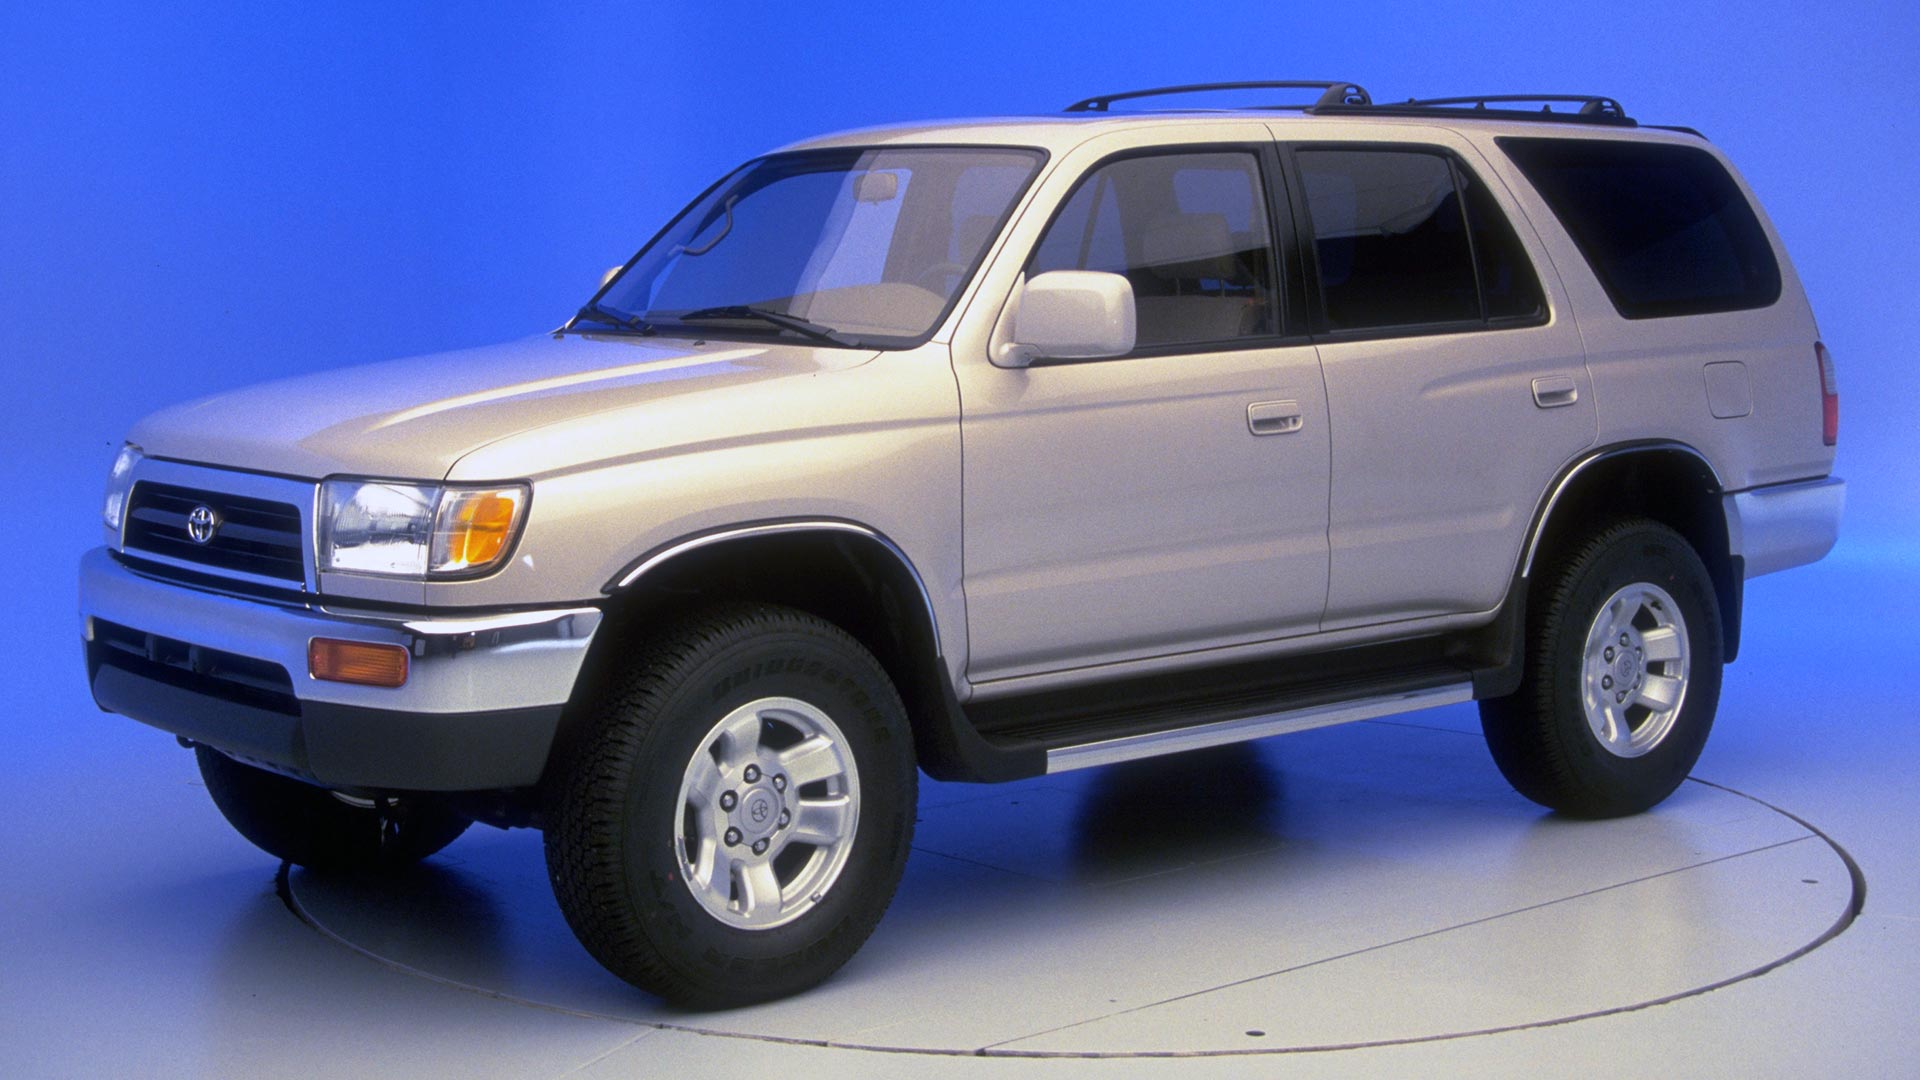 1996 Toyota 4Runner 4-door SUV